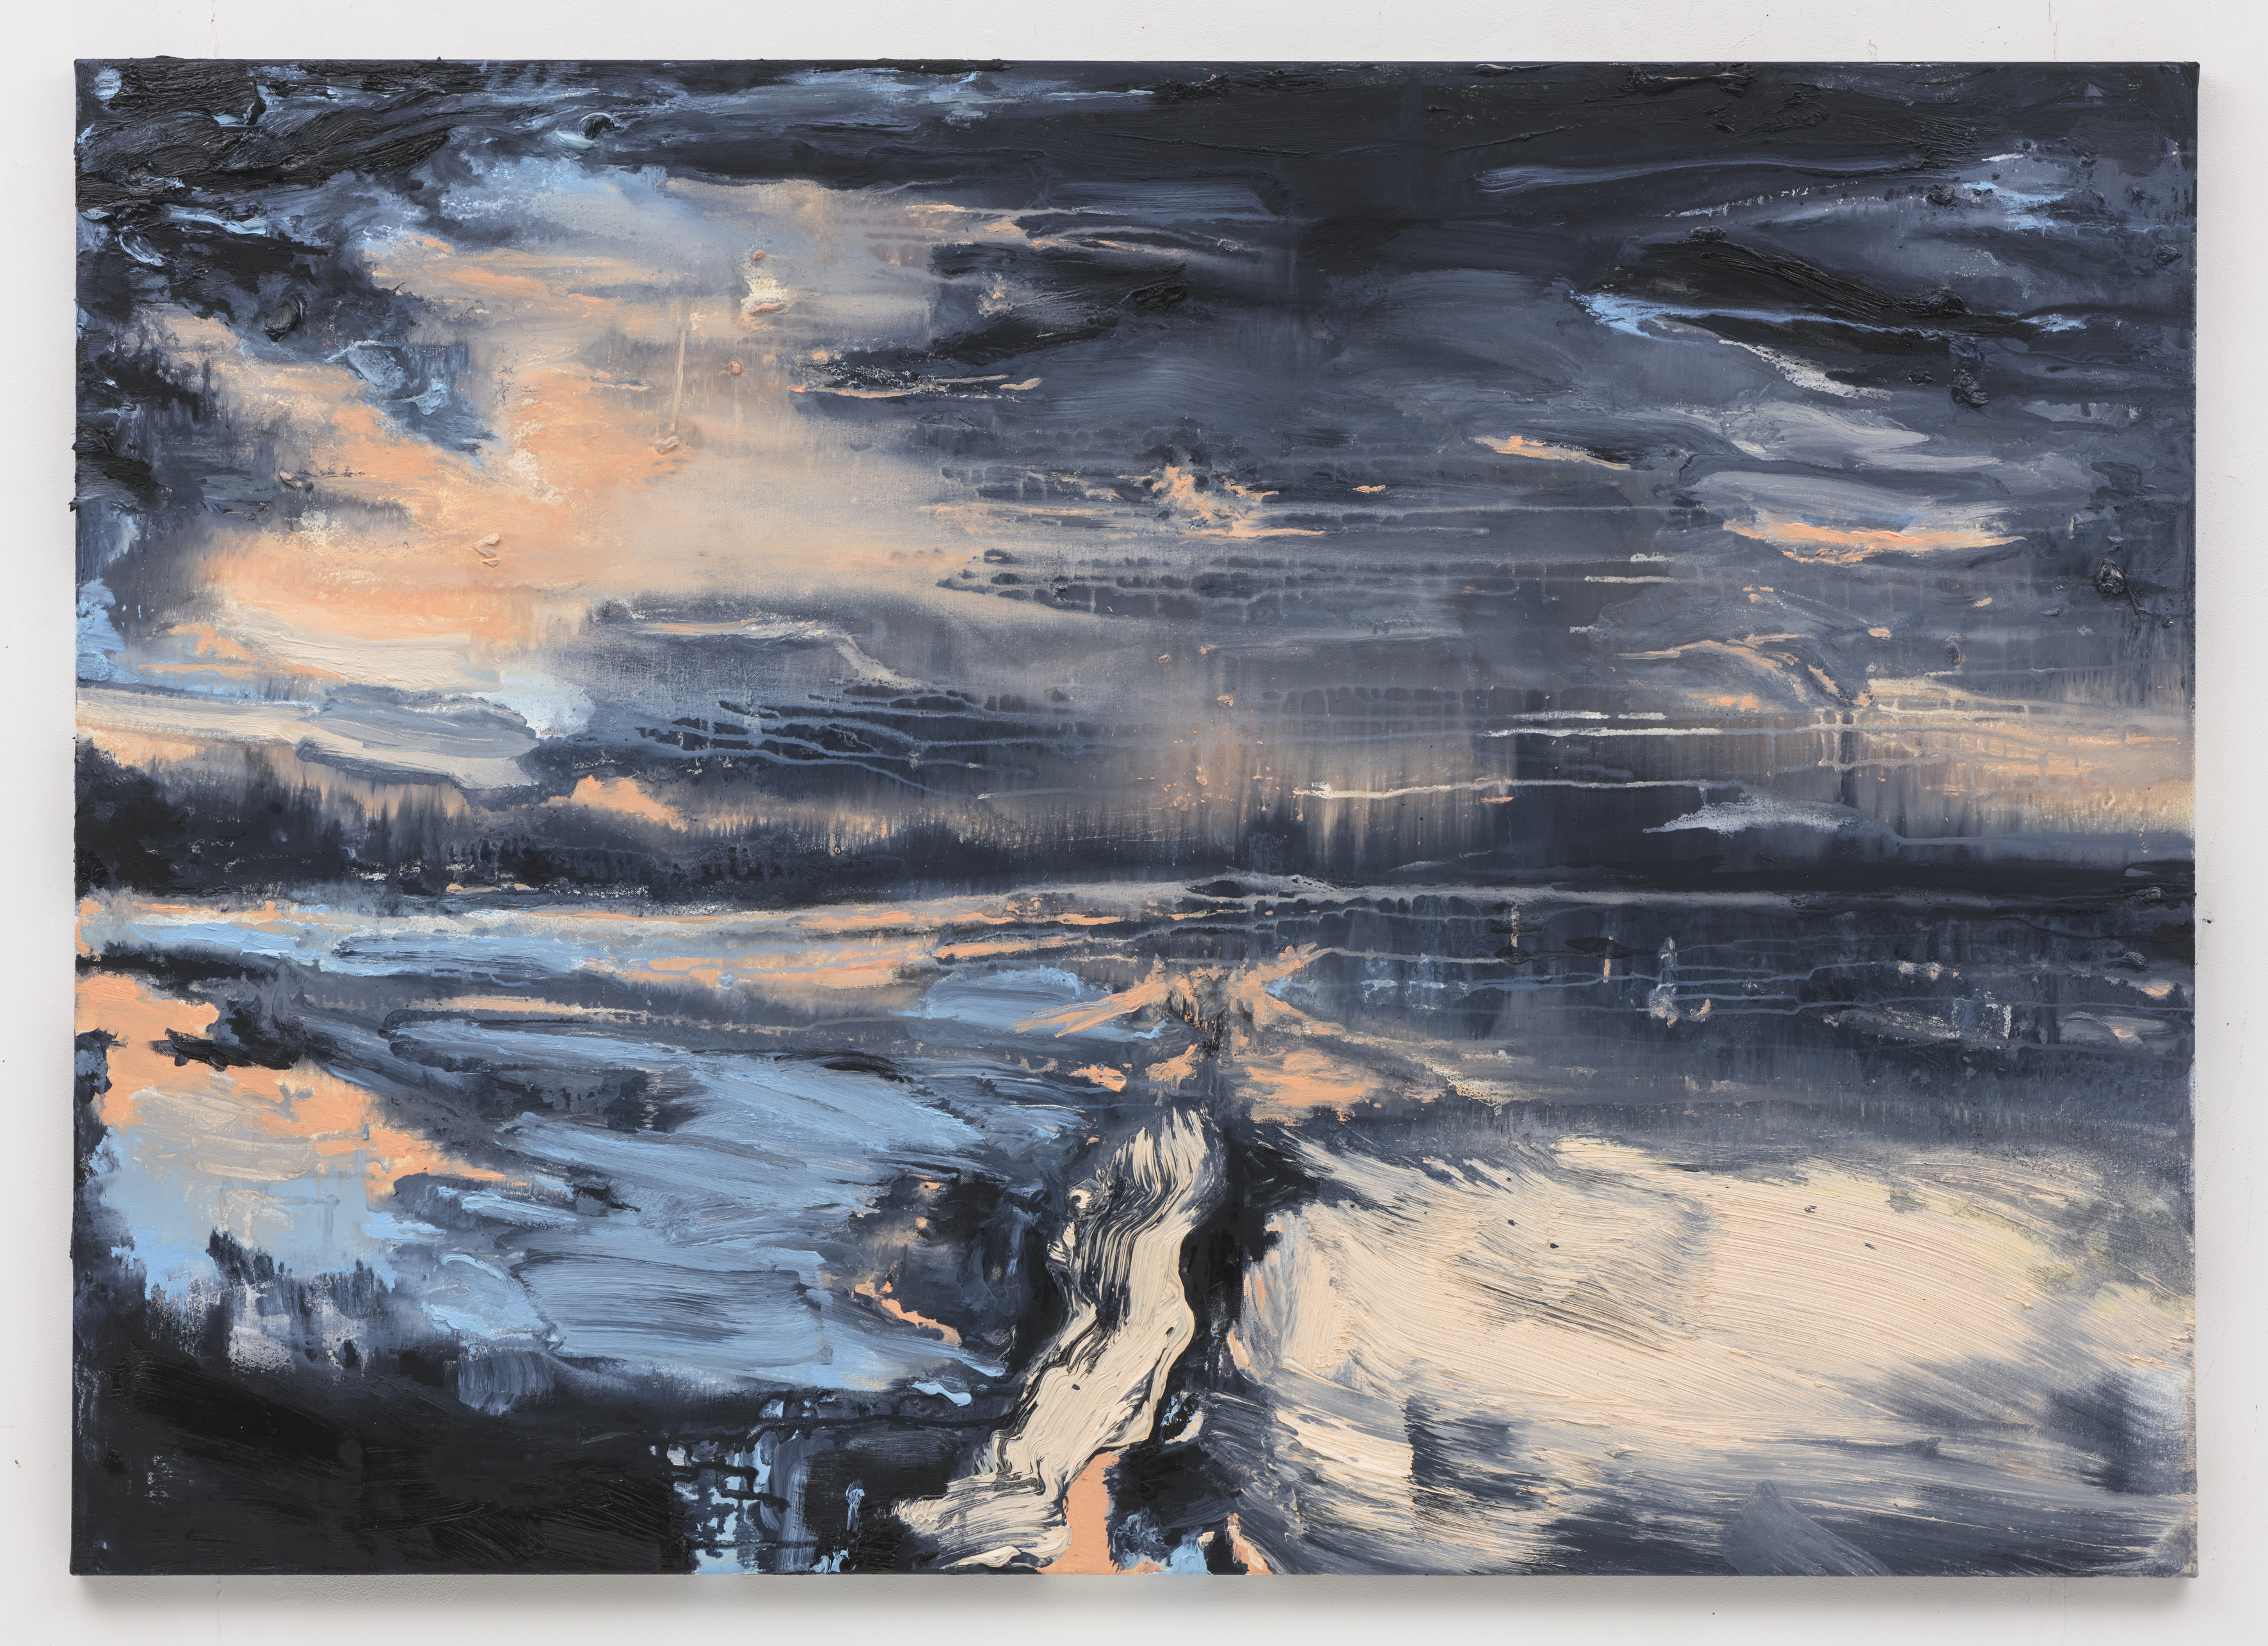 """""""Road to Nowhere"""", 100 x 140 cm., oil on linen 2018 (Portugal)"""